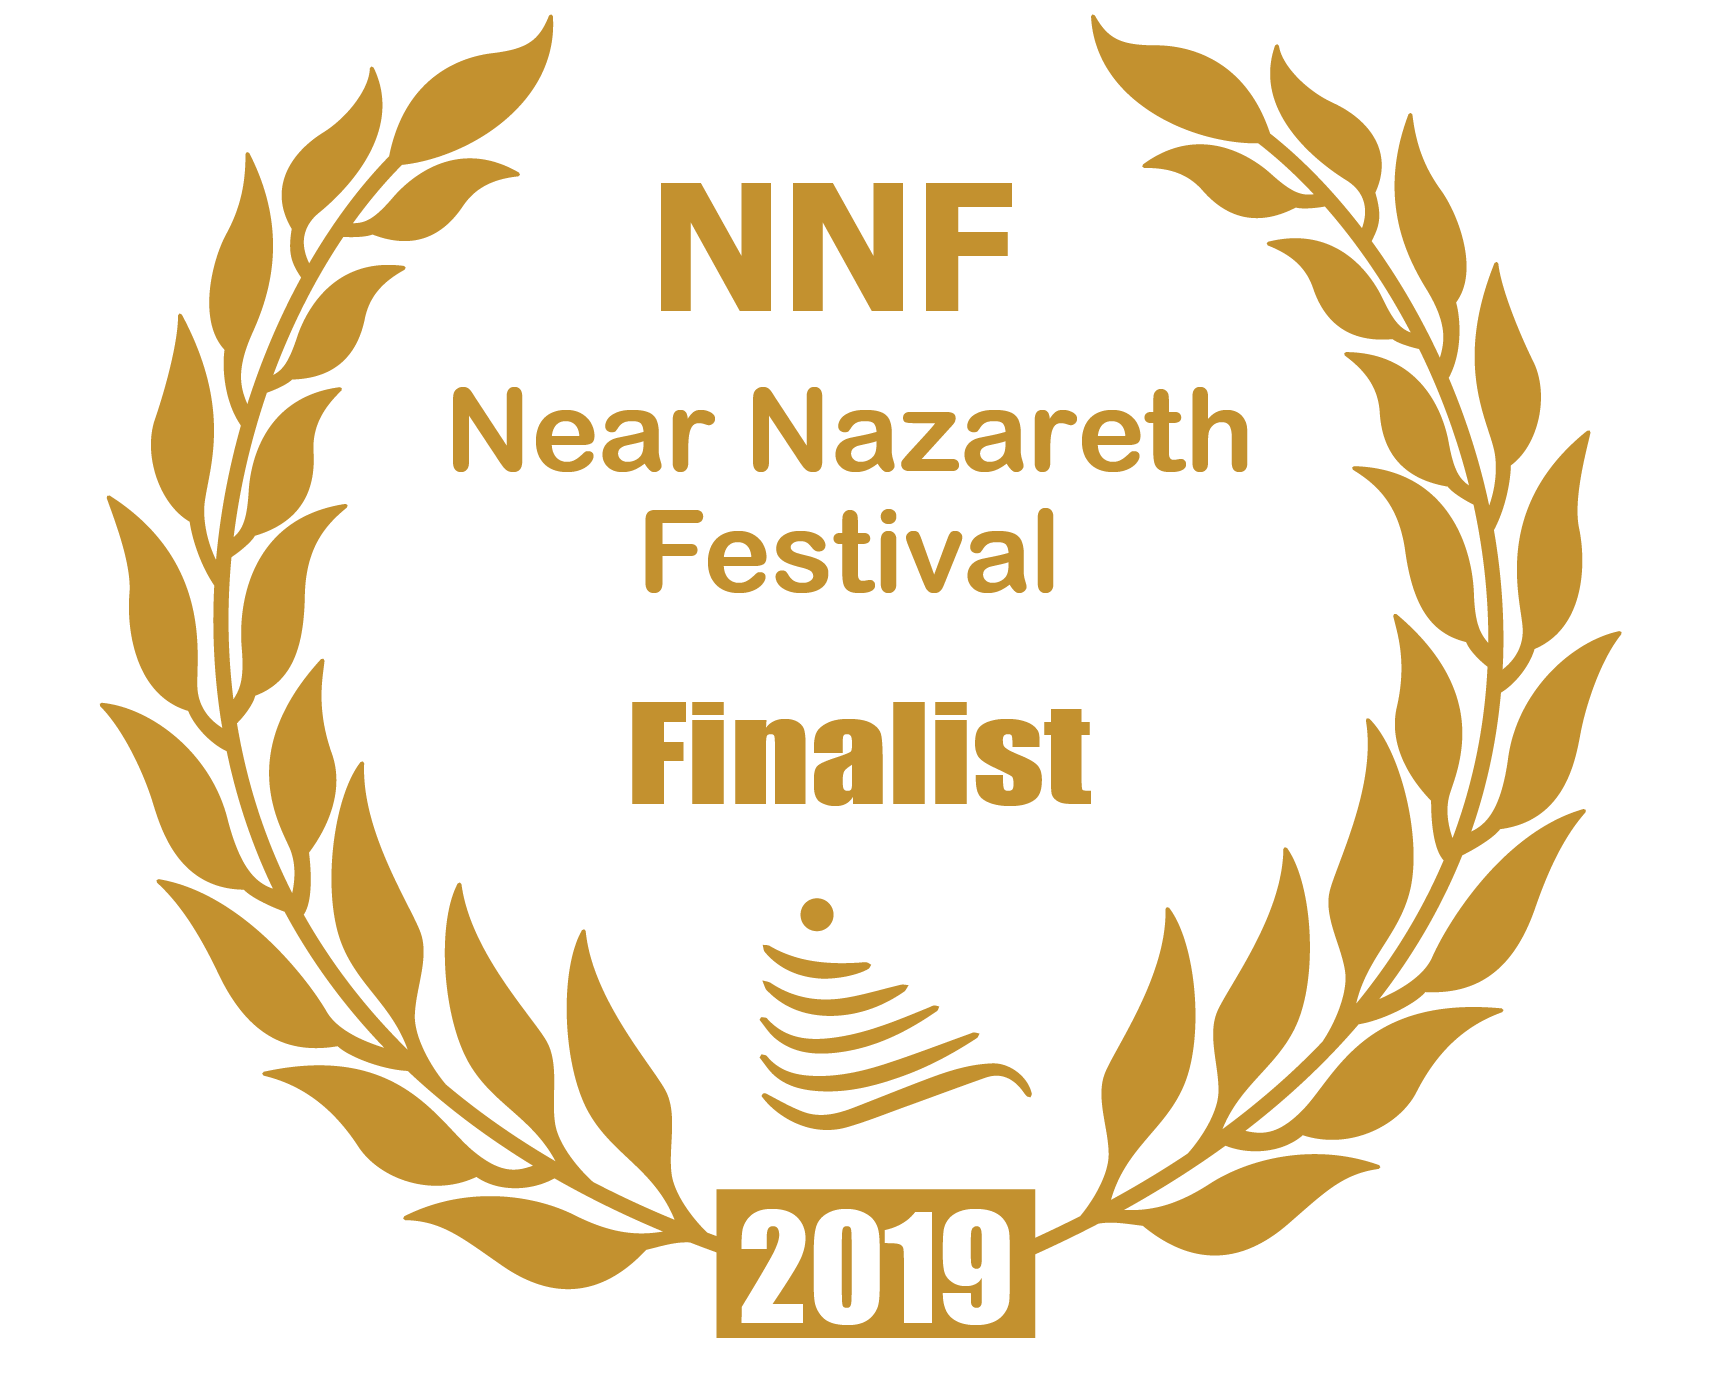 Finalist at the Near Nazareth Festival (NNF 2019)